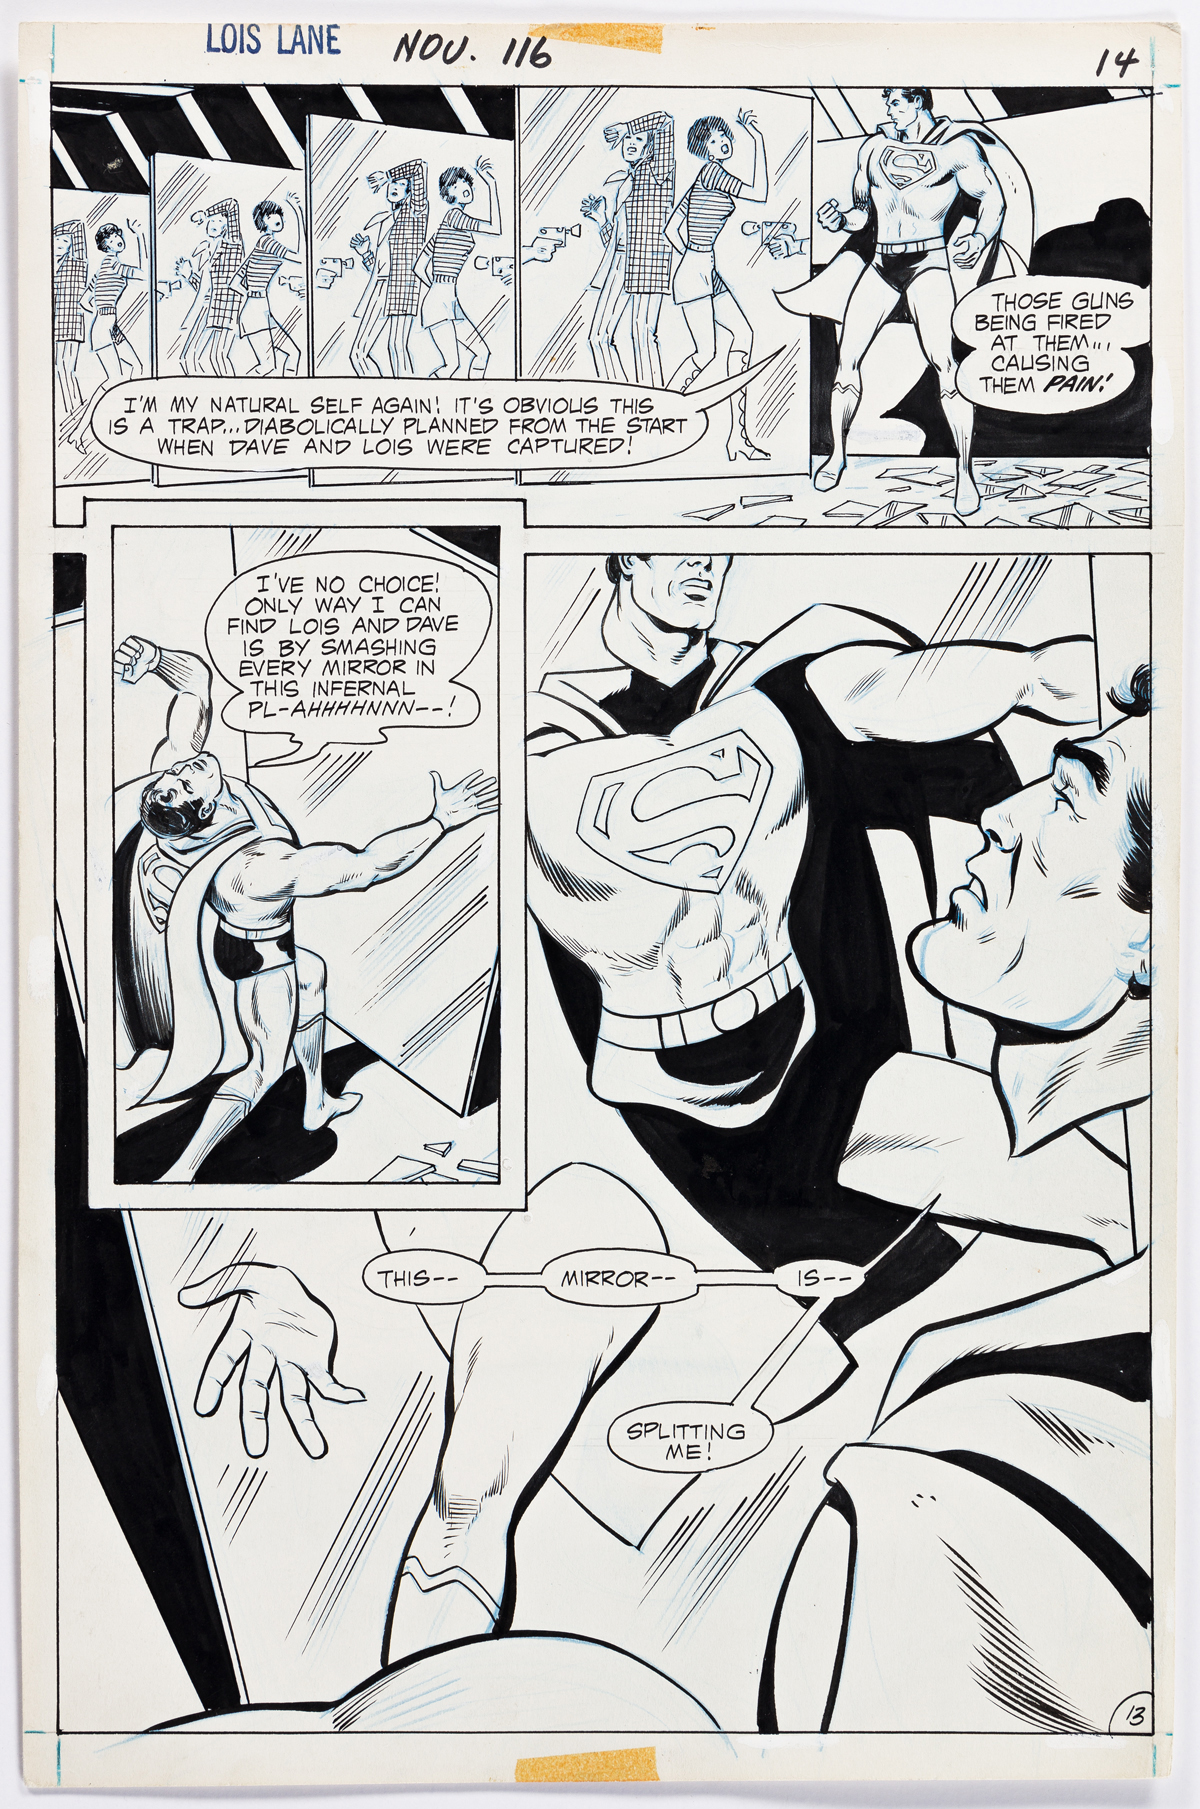 WERNER ROTH (1921-1973) / VINCE COLLETTA (1923-1991) This mirror is splitting me! [COMICS / SUPERMAN / LOIS LANE]